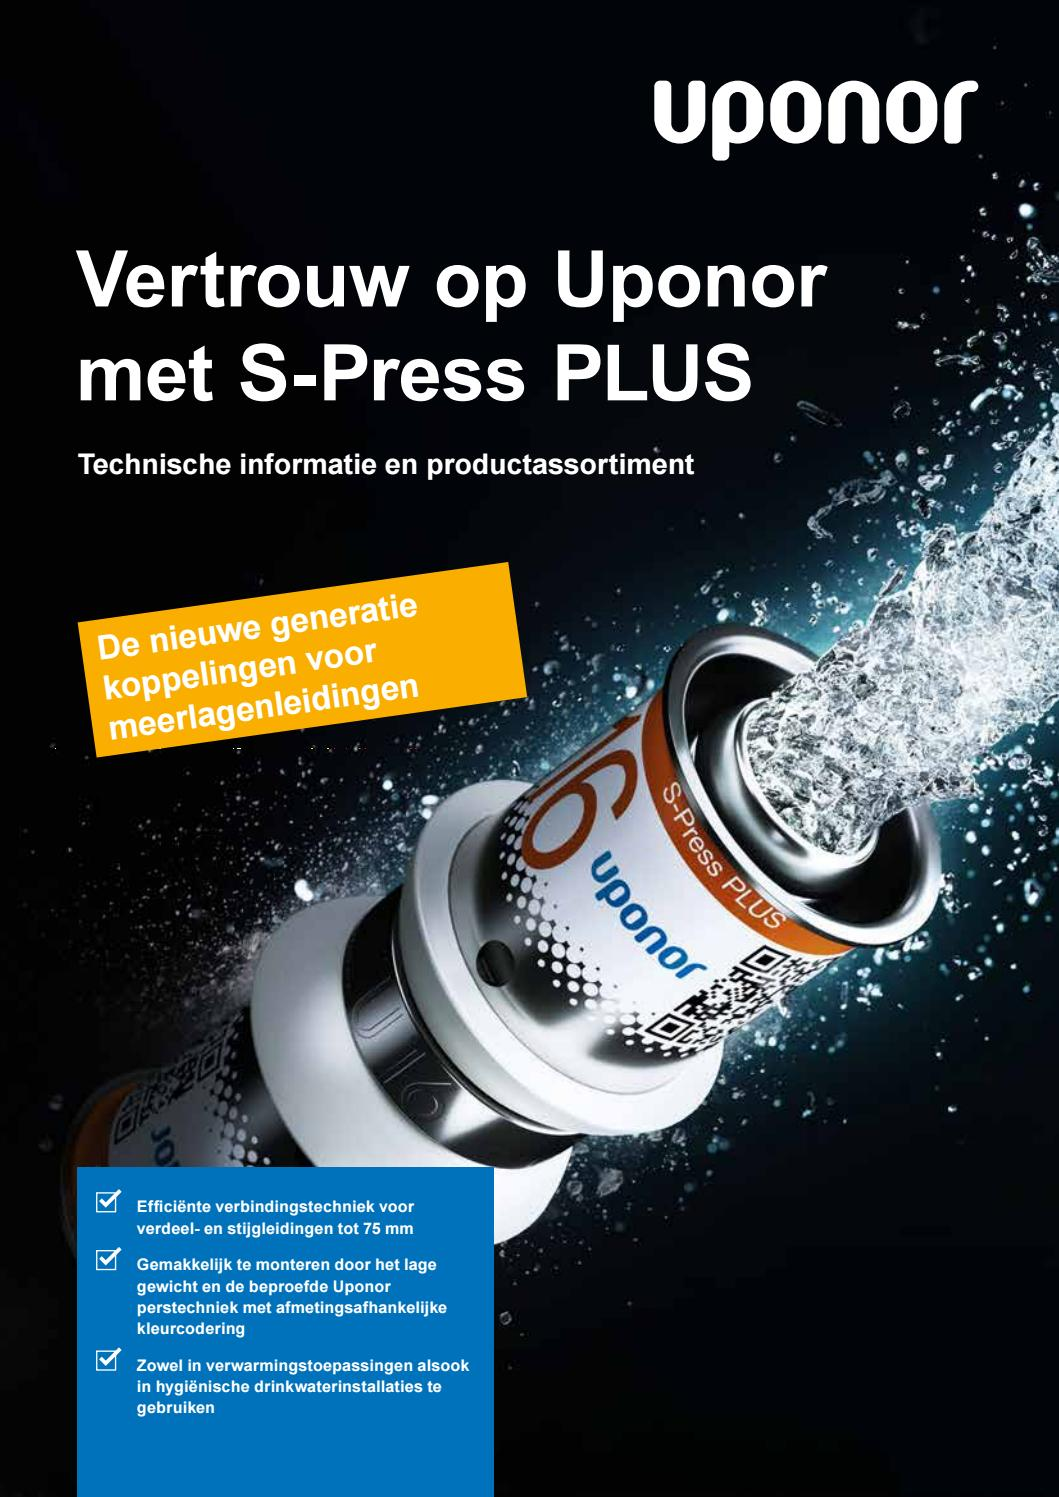 Uponor ti s press plus nl 1094401 201902 by uponornl - issuu